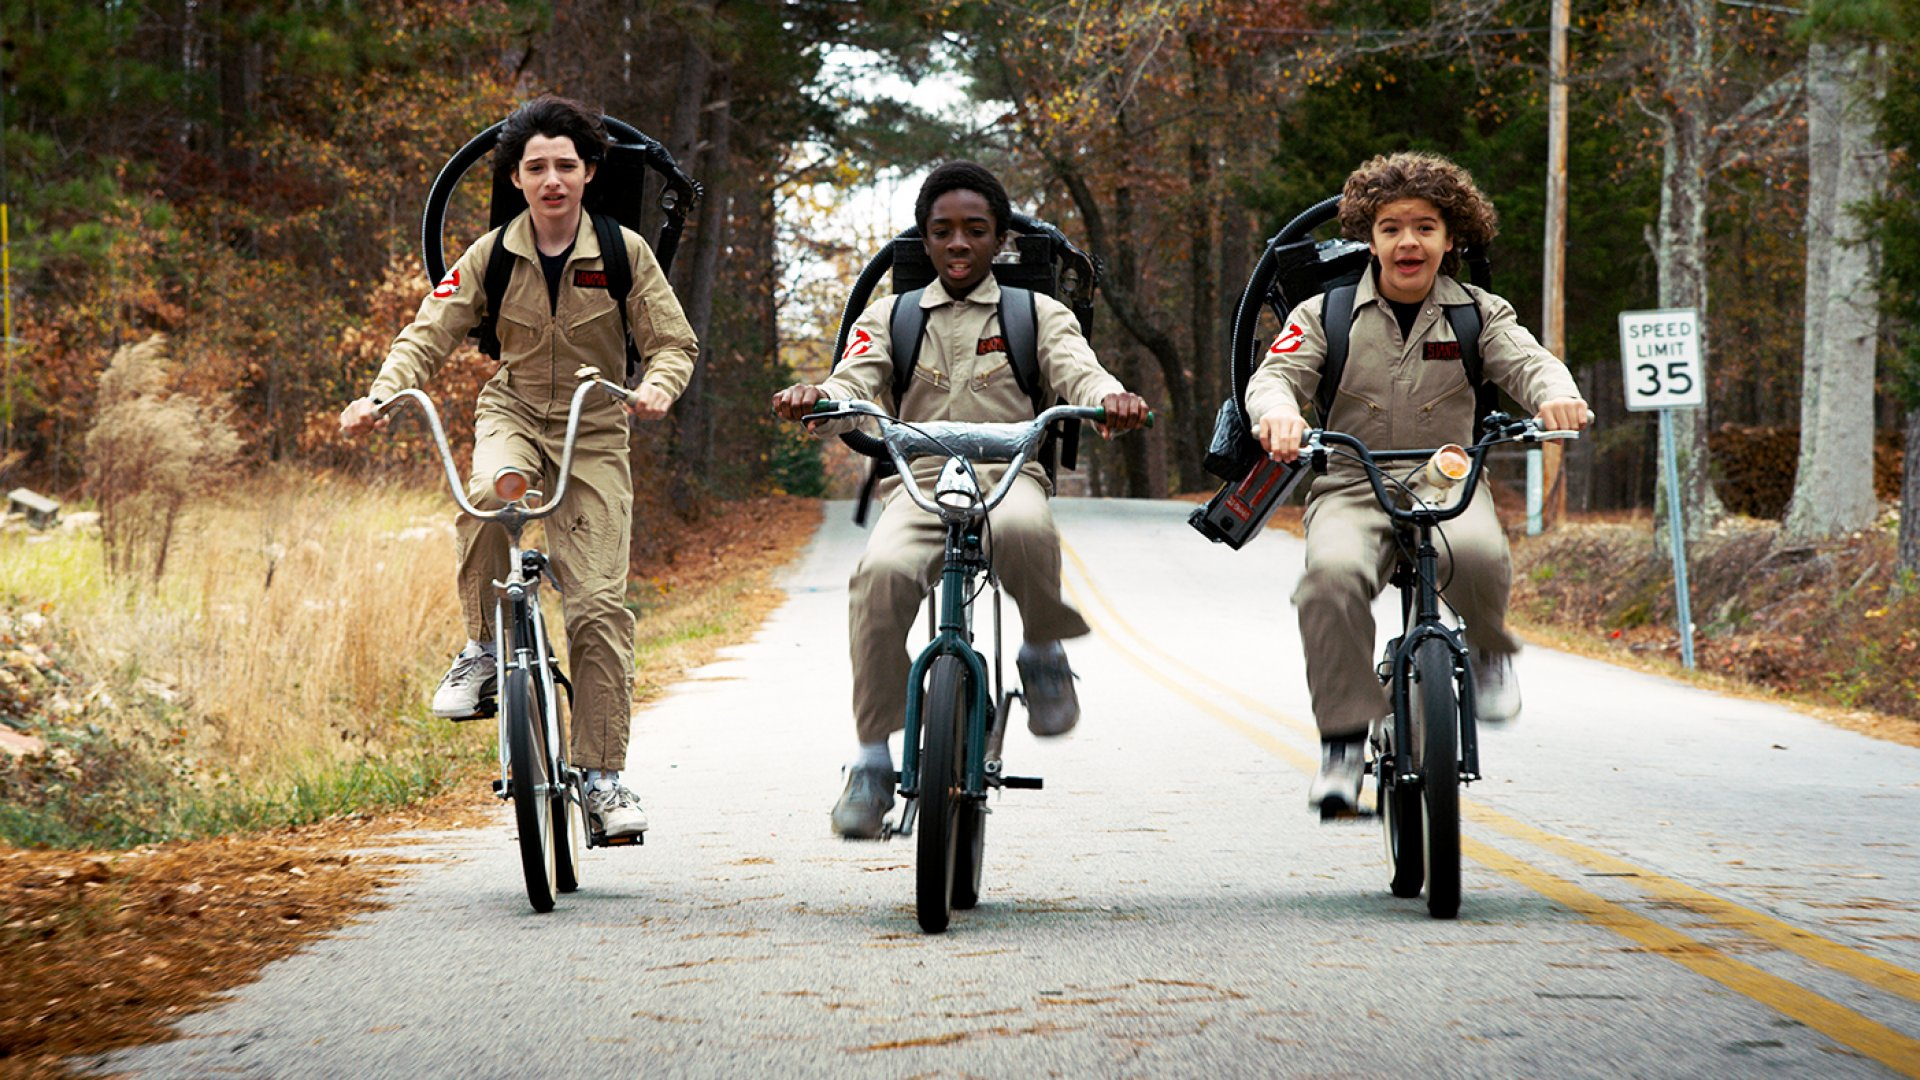 6 Must-Know Lessons We Can All Learn From 'Stranger Things'